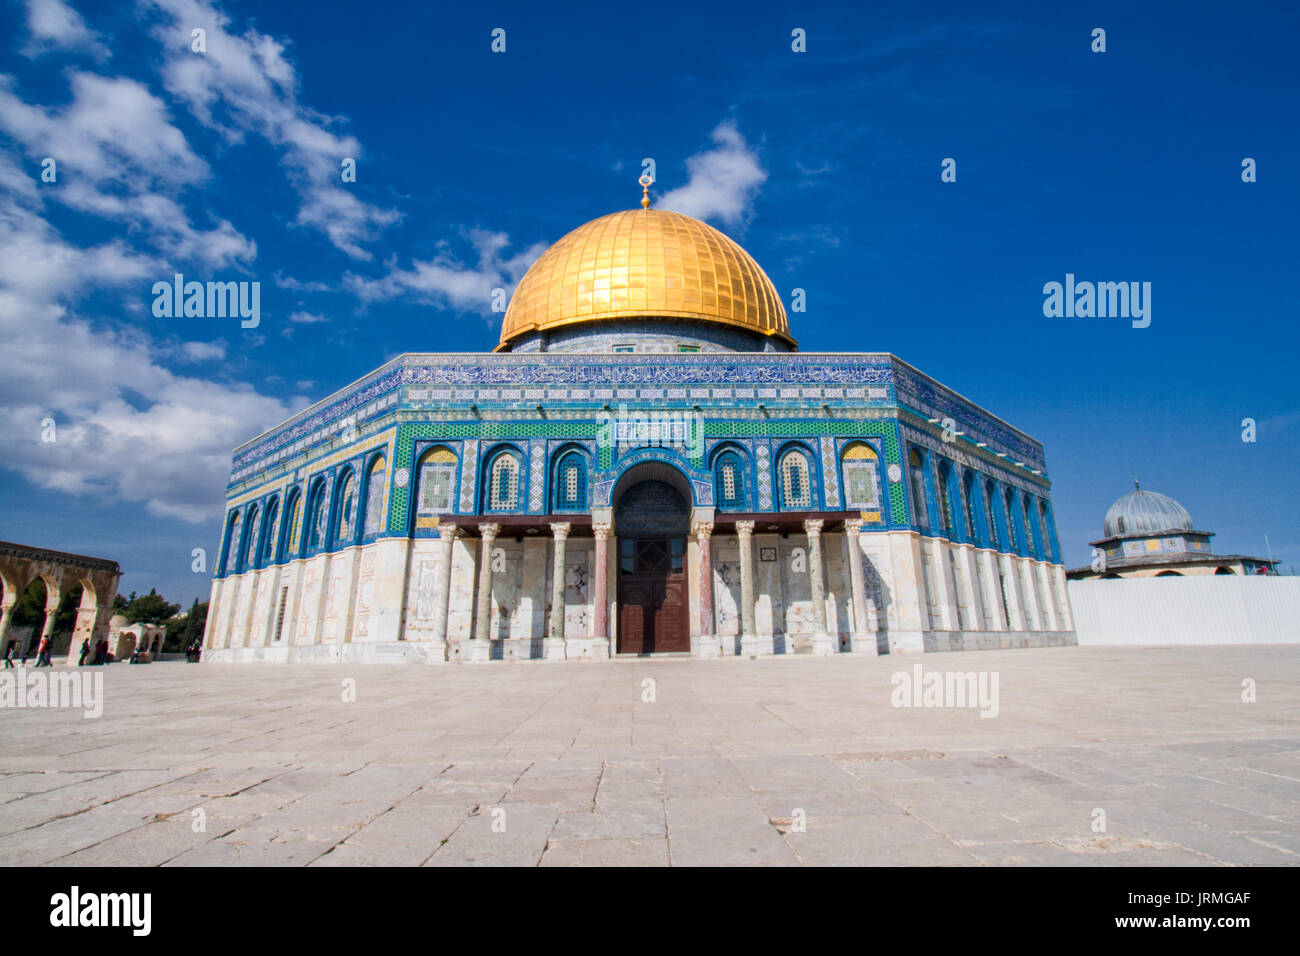 Entrance of the Dome of the Rock on the Temple Mount in Jerusalem, Israel - Stock Image